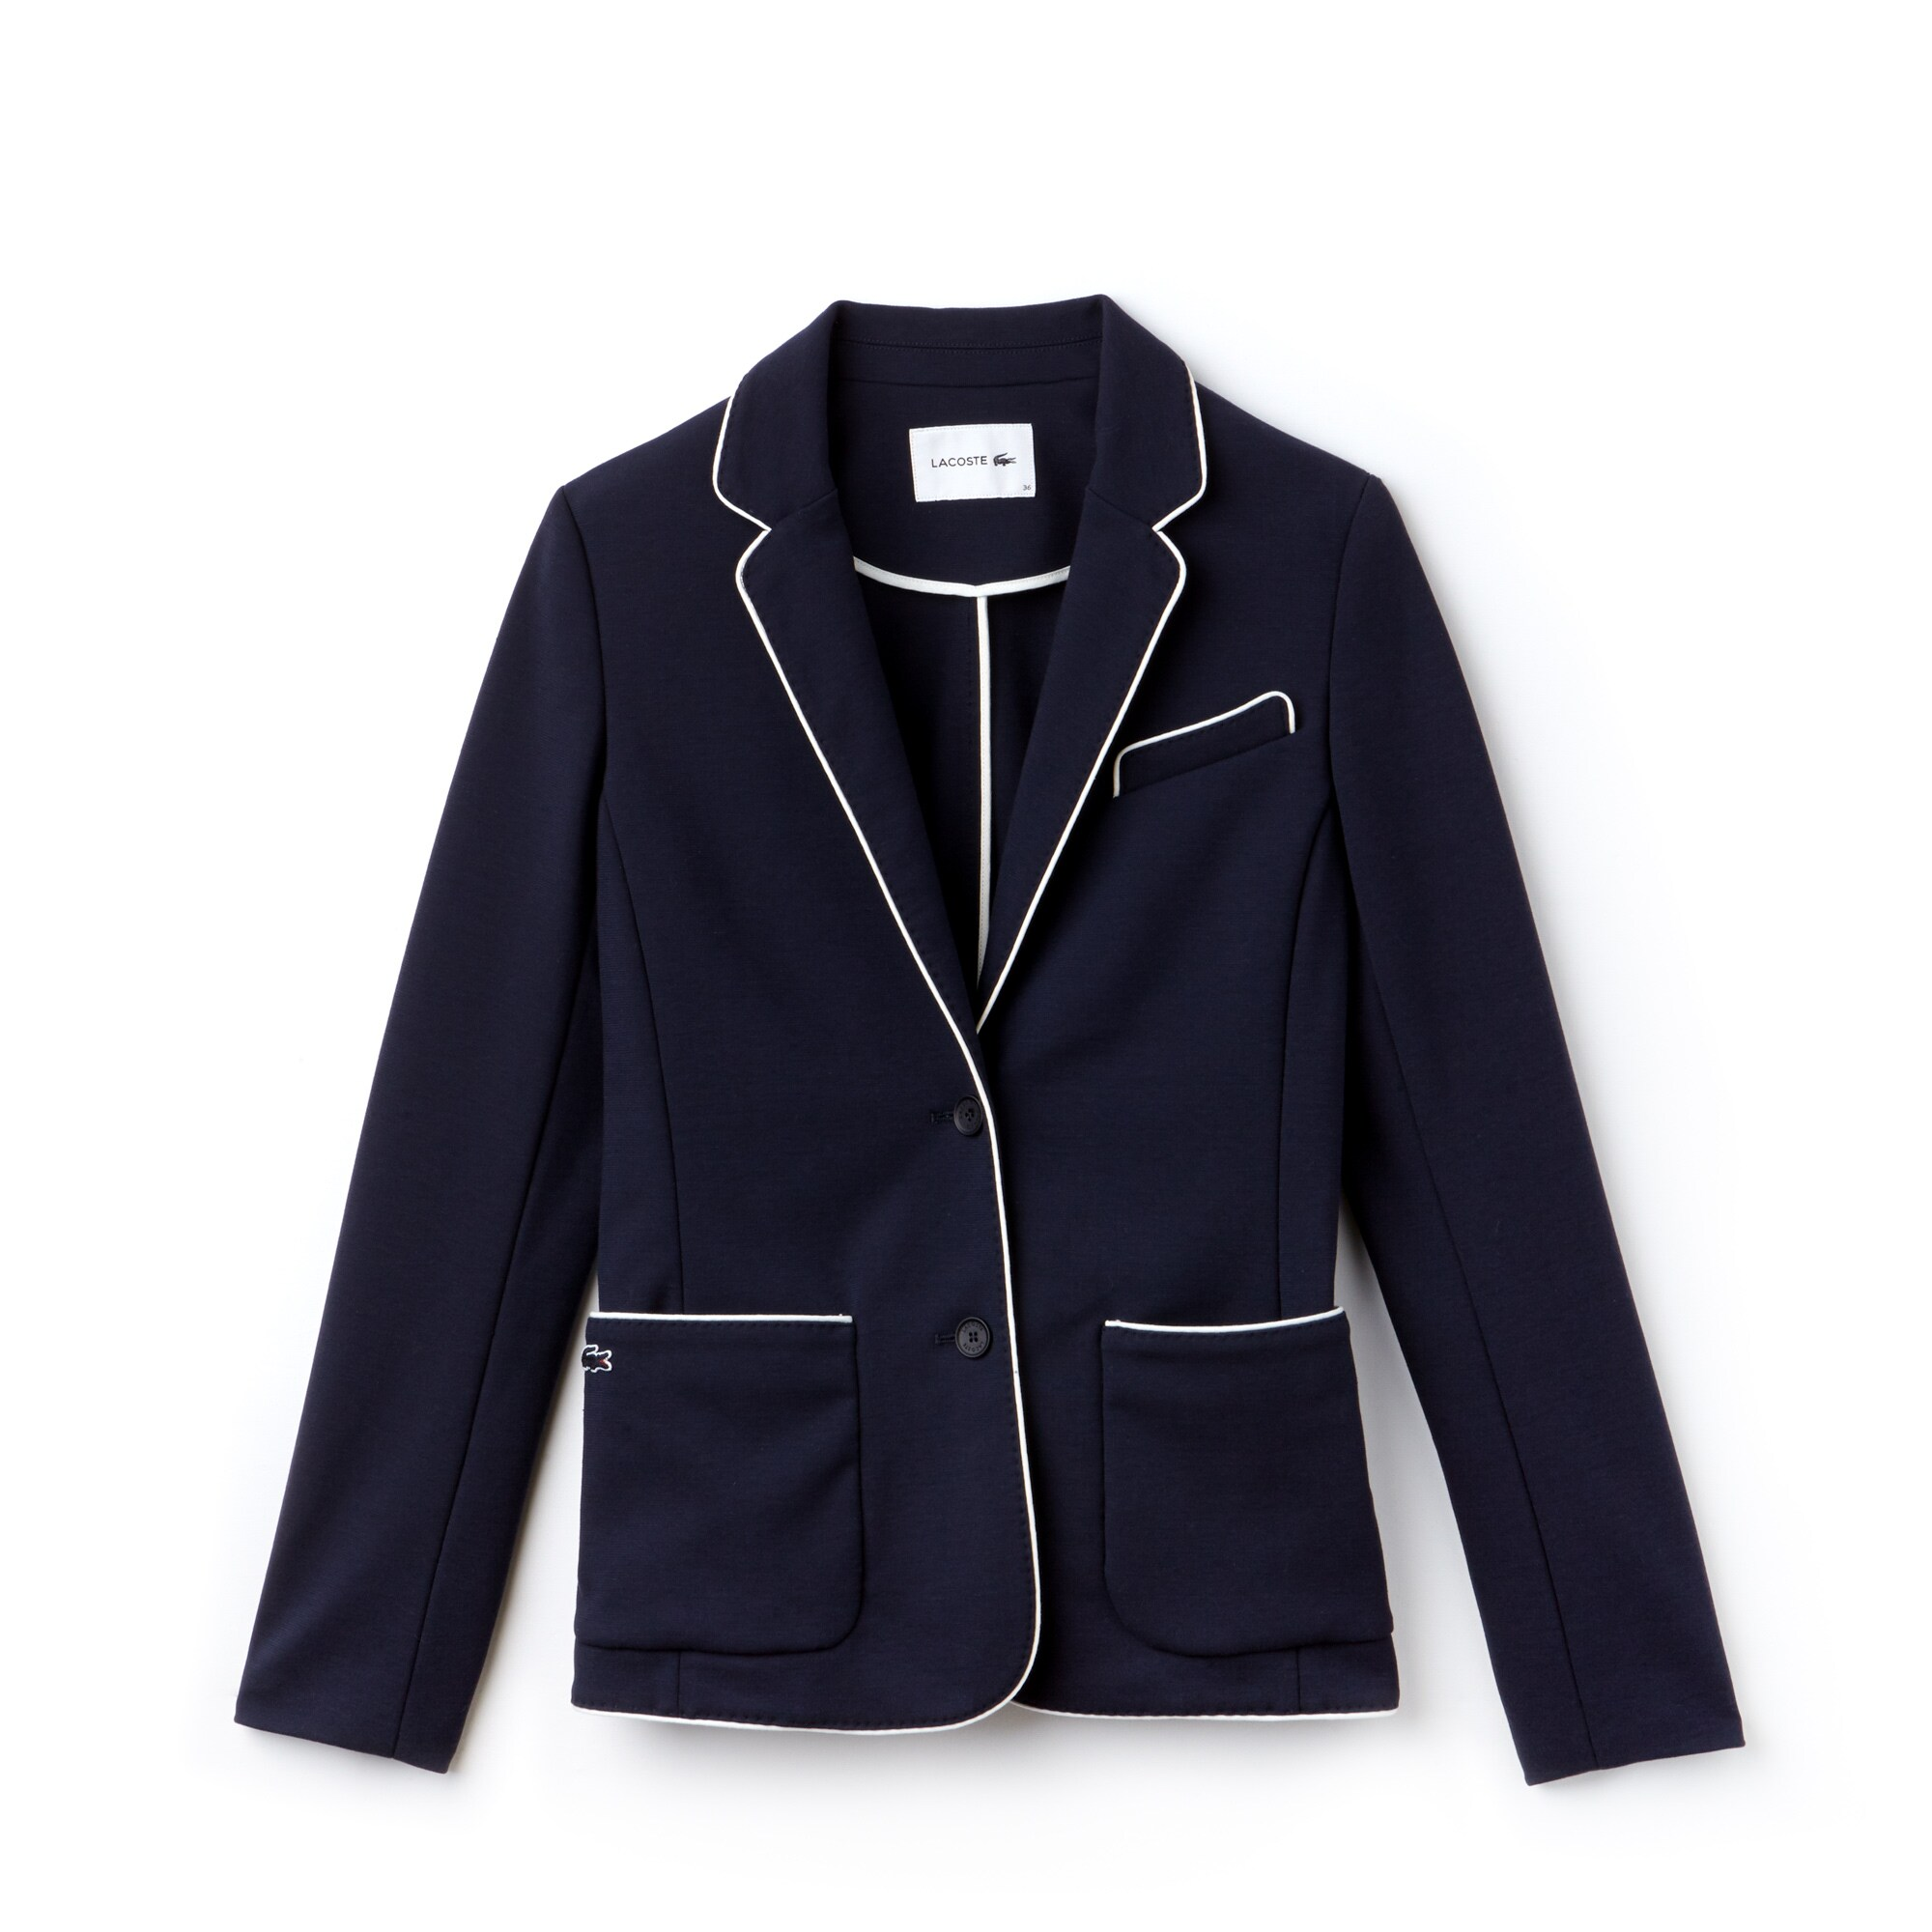 Blazer en crêpe interlock de coton unie avec piping